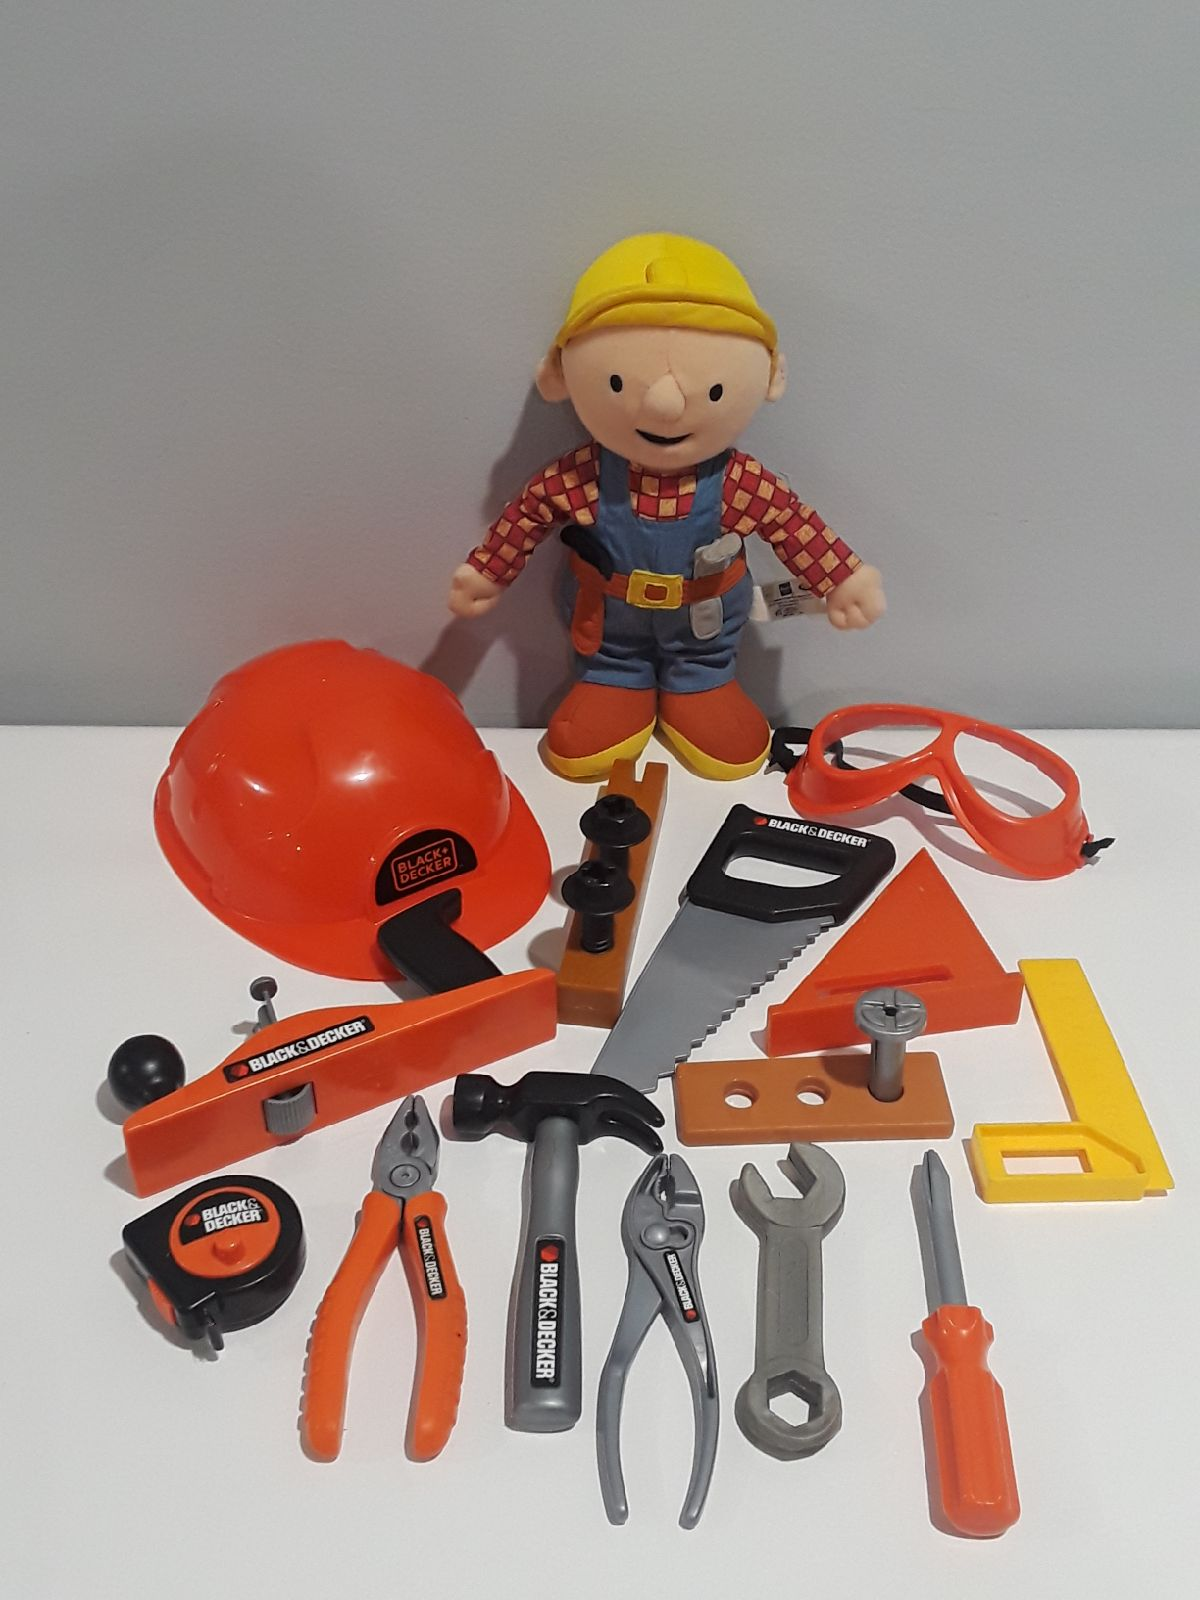 Black & Decker toy tool Lot